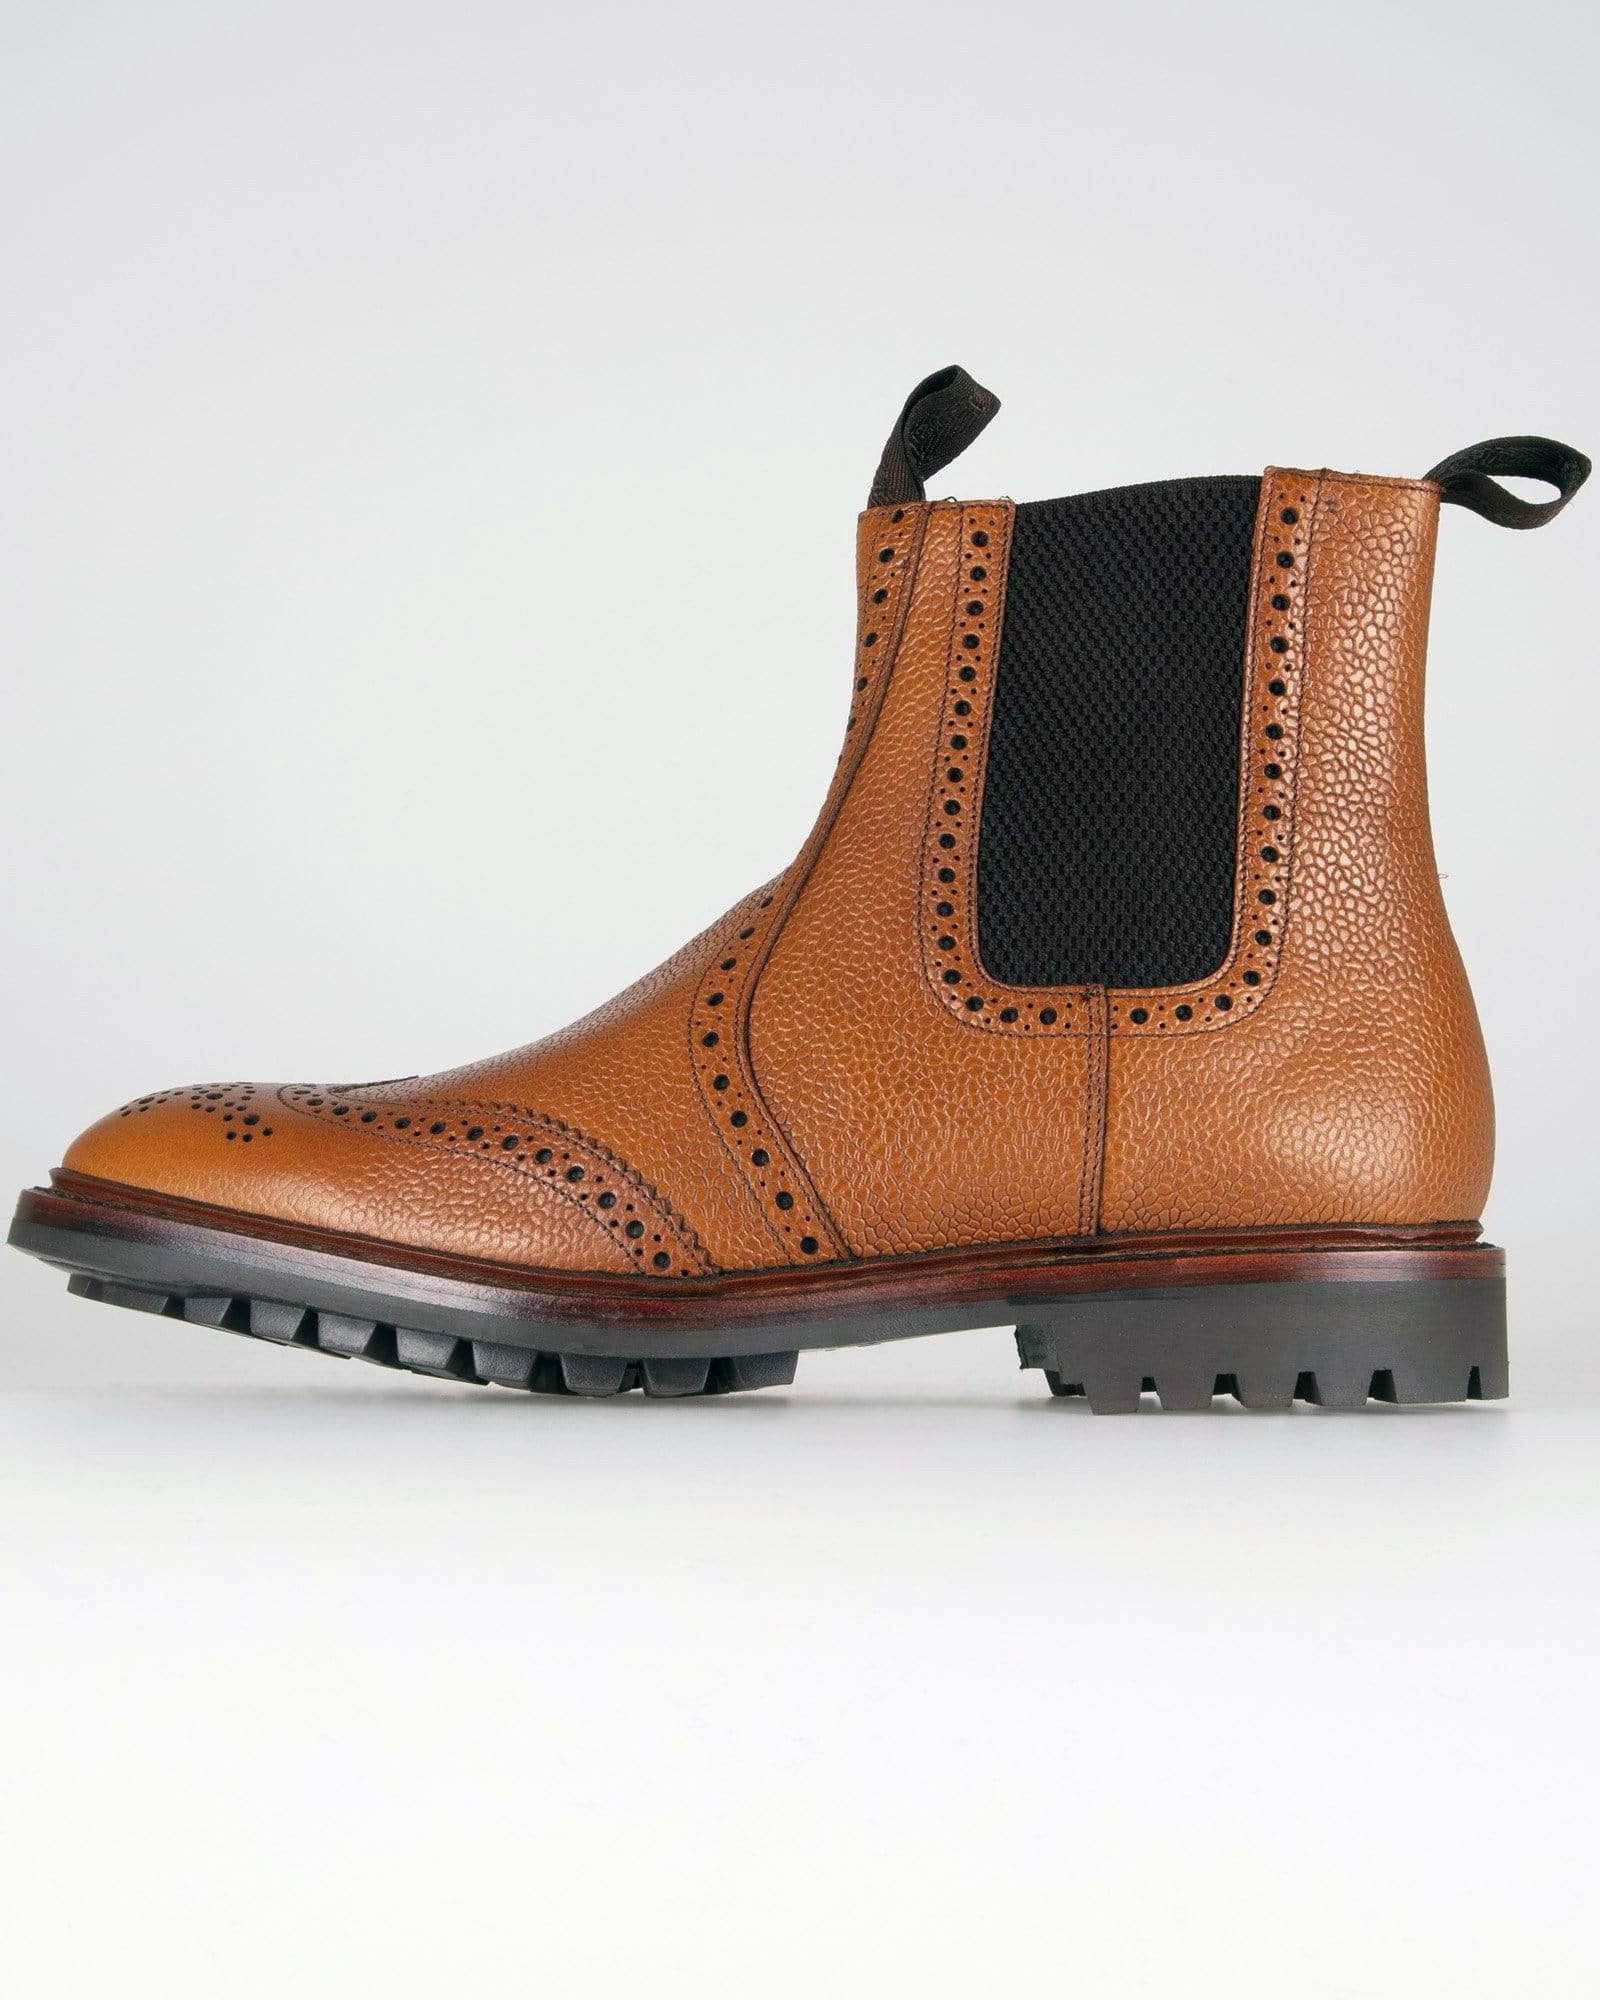 Loake Keswick Brogue Chelsea Boot - Tan Grain UK 7 KESTG7 5050362263471 Loake Shoemakers Boots